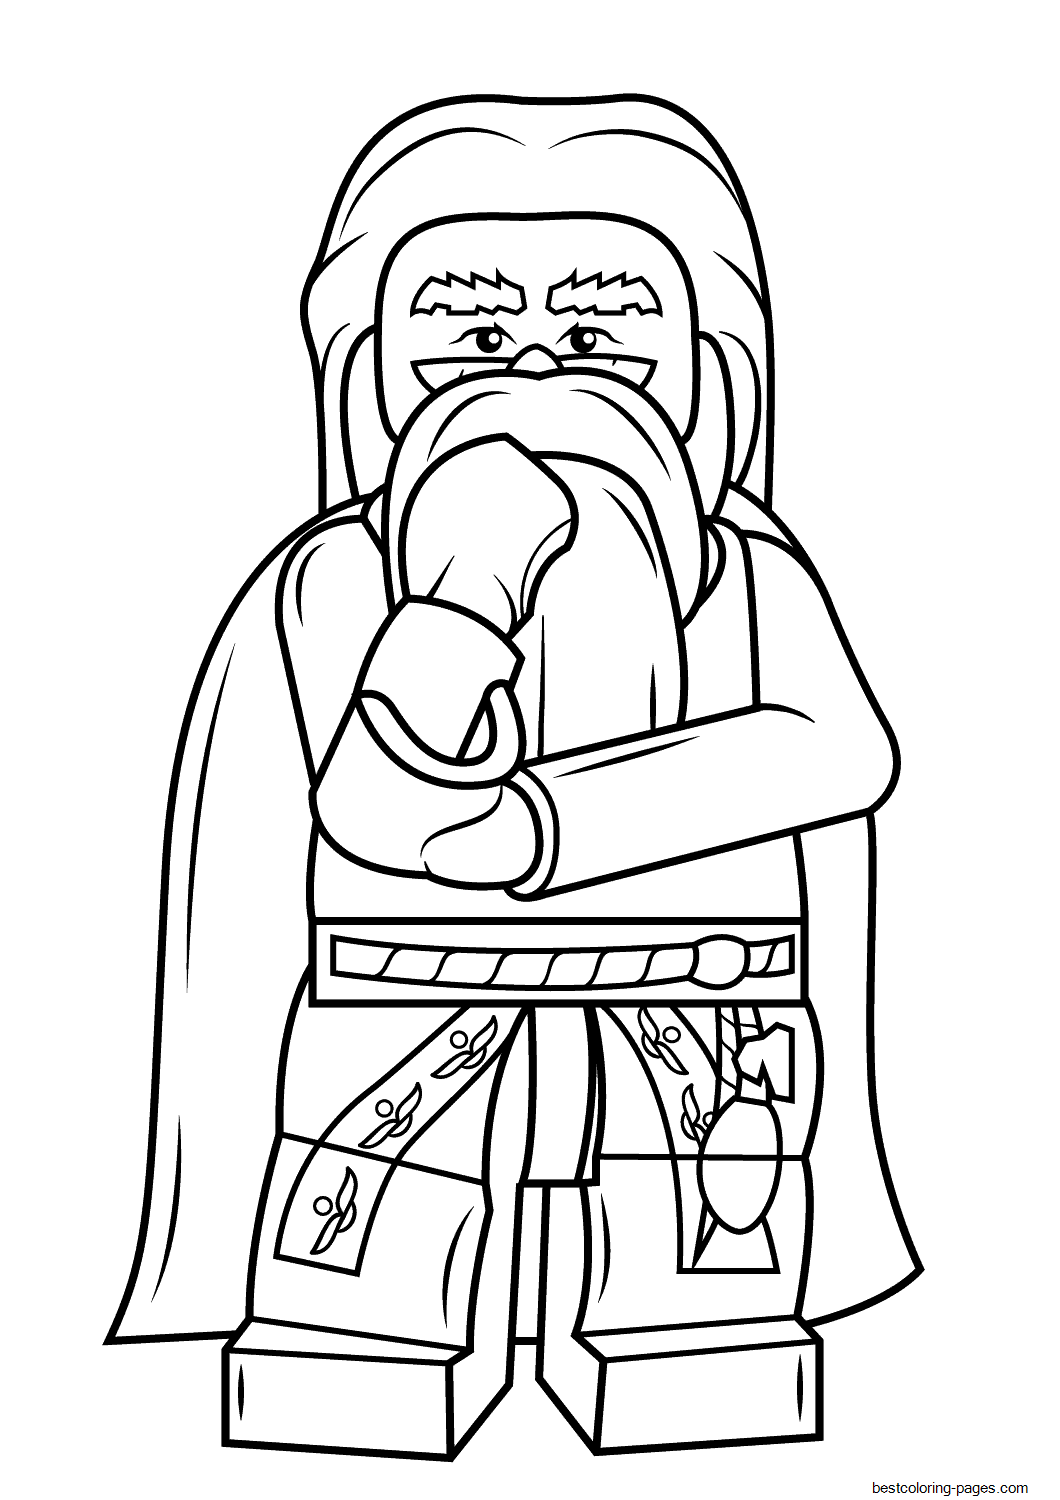 harry potter lego coloring pages disegni da colorare harry potter lego harry pages coloring lego potter